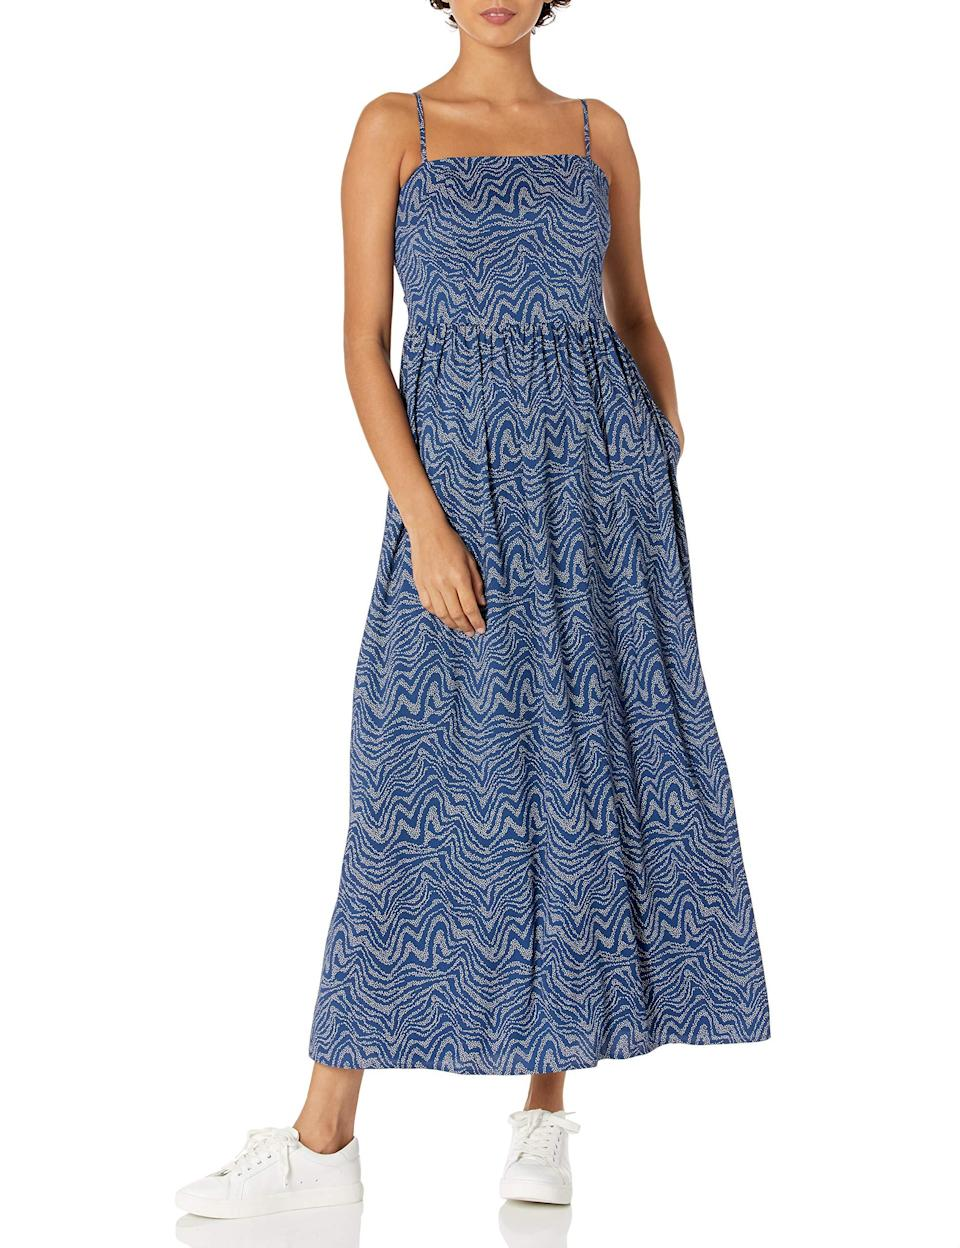 """<br><br><strong>Goodthreads</strong> Georgette Smock-Back Cami Maxi Dress, $, available at <a href=""""https://amzn.to/2SFHMJf"""" rel=""""nofollow noopener"""" target=""""_blank"""" data-ylk=""""slk:Amazon"""" class=""""link rapid-noclick-resp"""">Amazon</a>"""